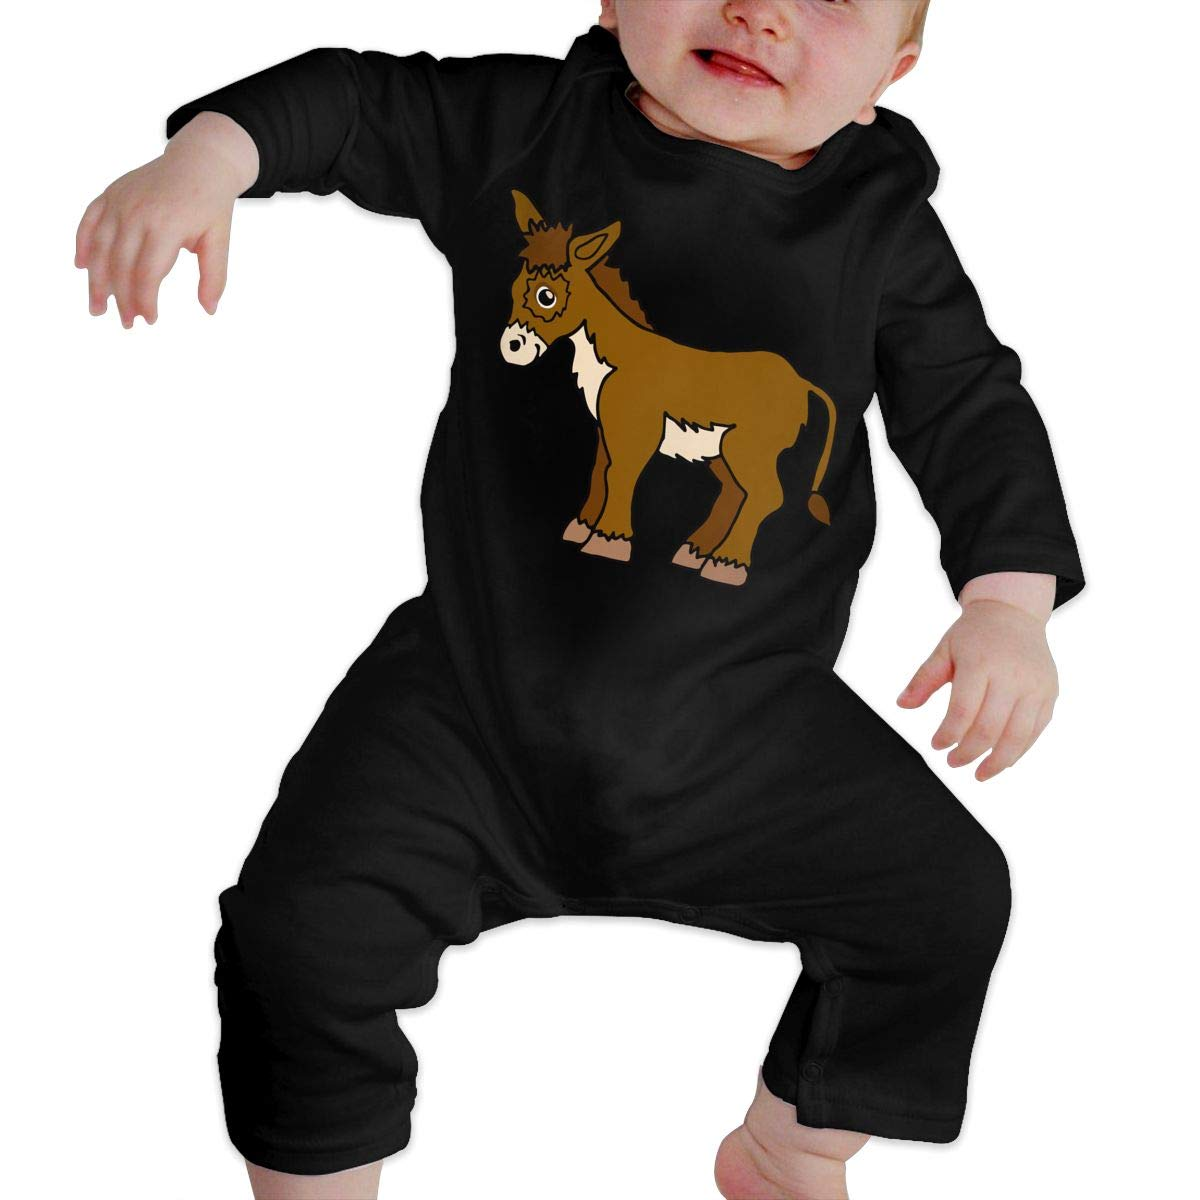 UGFGF-S3 Donkey Newborn Baby Long Sleeve Romper Jumpsuit Baby Rompers